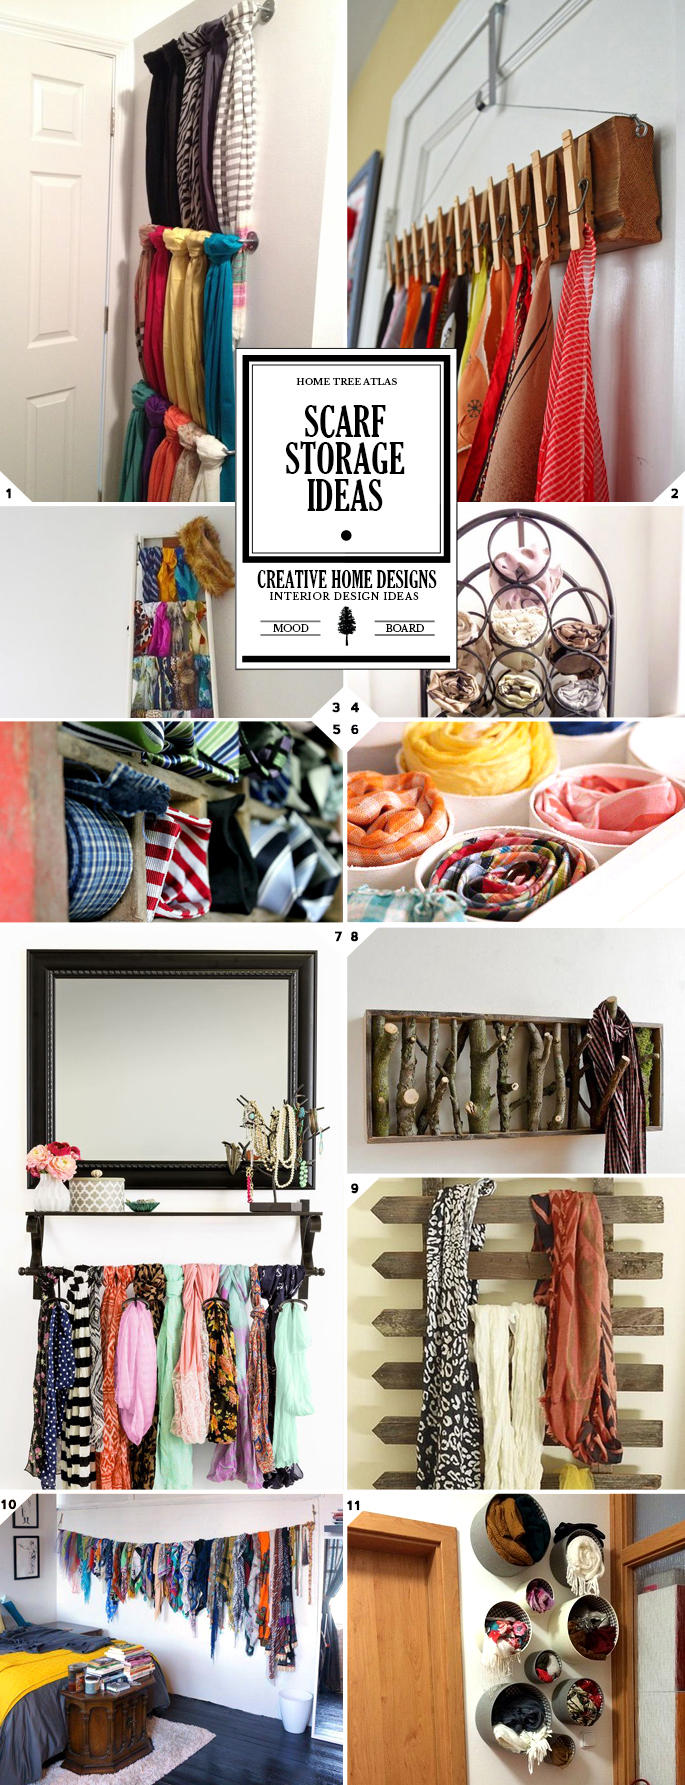 Inventive and Creative Scarf Storage Ideas and Organization Tips